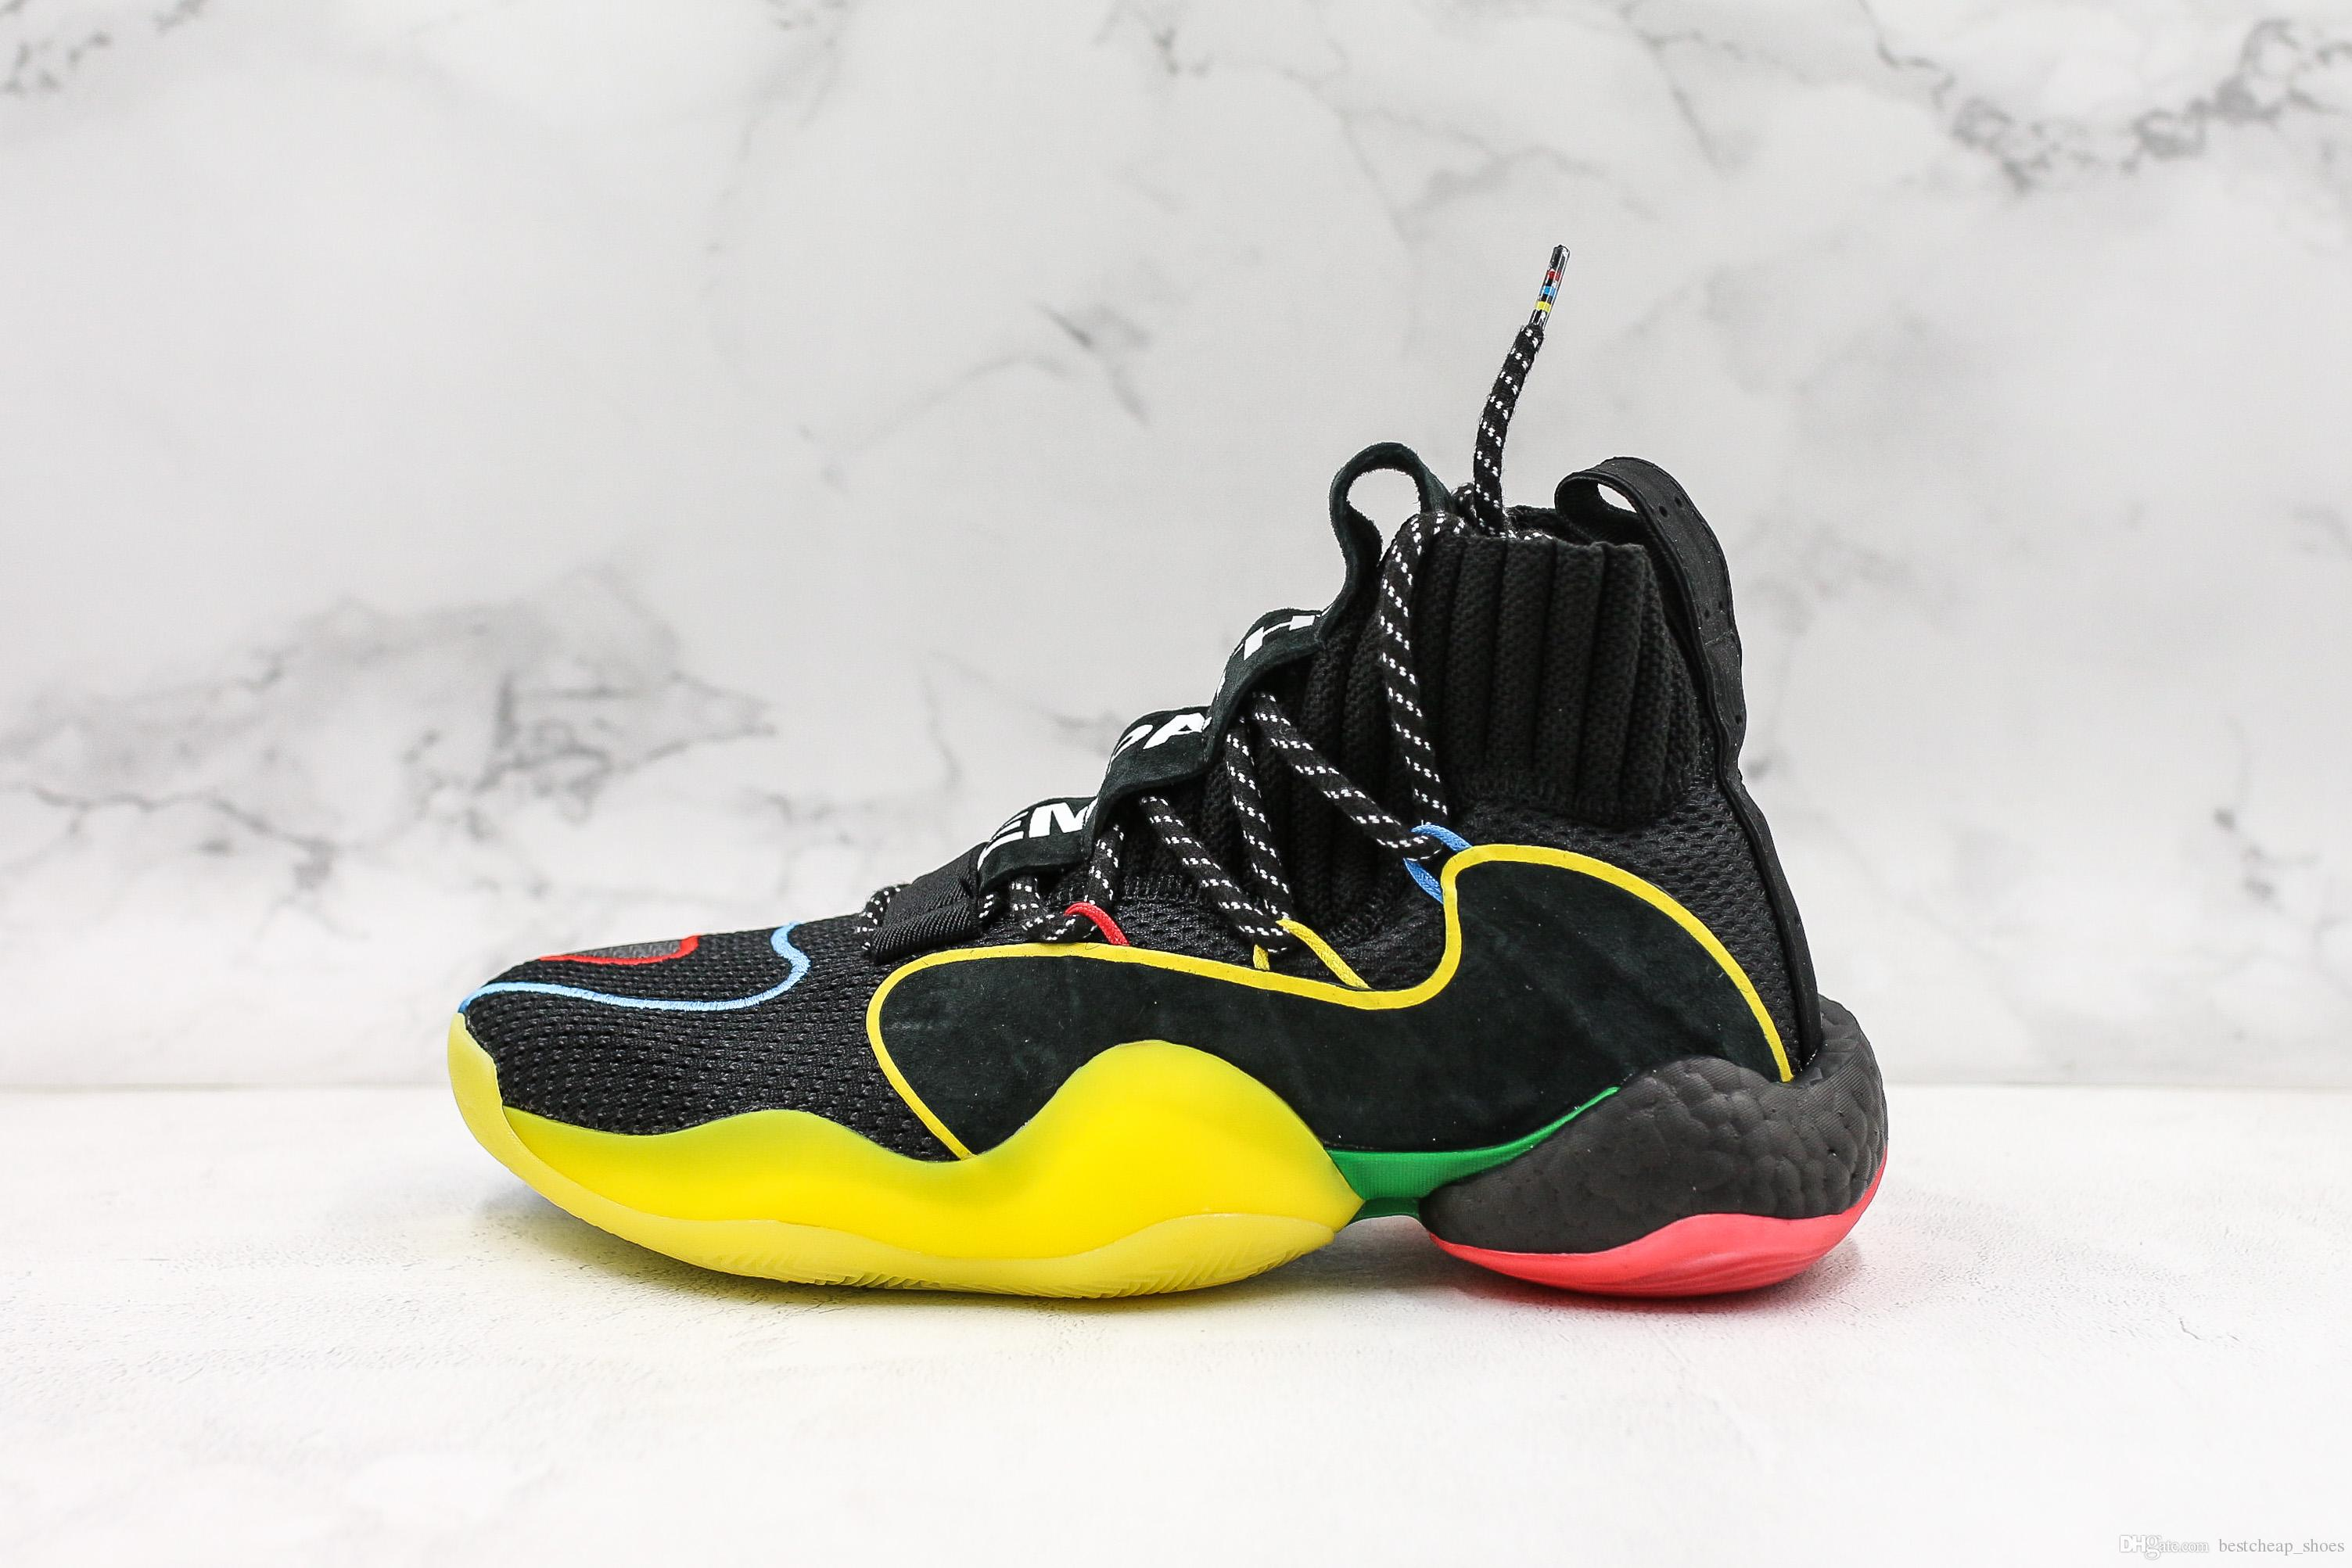 finest selection 9eadc a8fd9 2019 New Crazy Byw X Pharrell Williams Gratitude And Empathy Sock Mens  Basketball Shoes Designer Fly Men Trainer Tennis Sneakers Size 40 45 From  ...